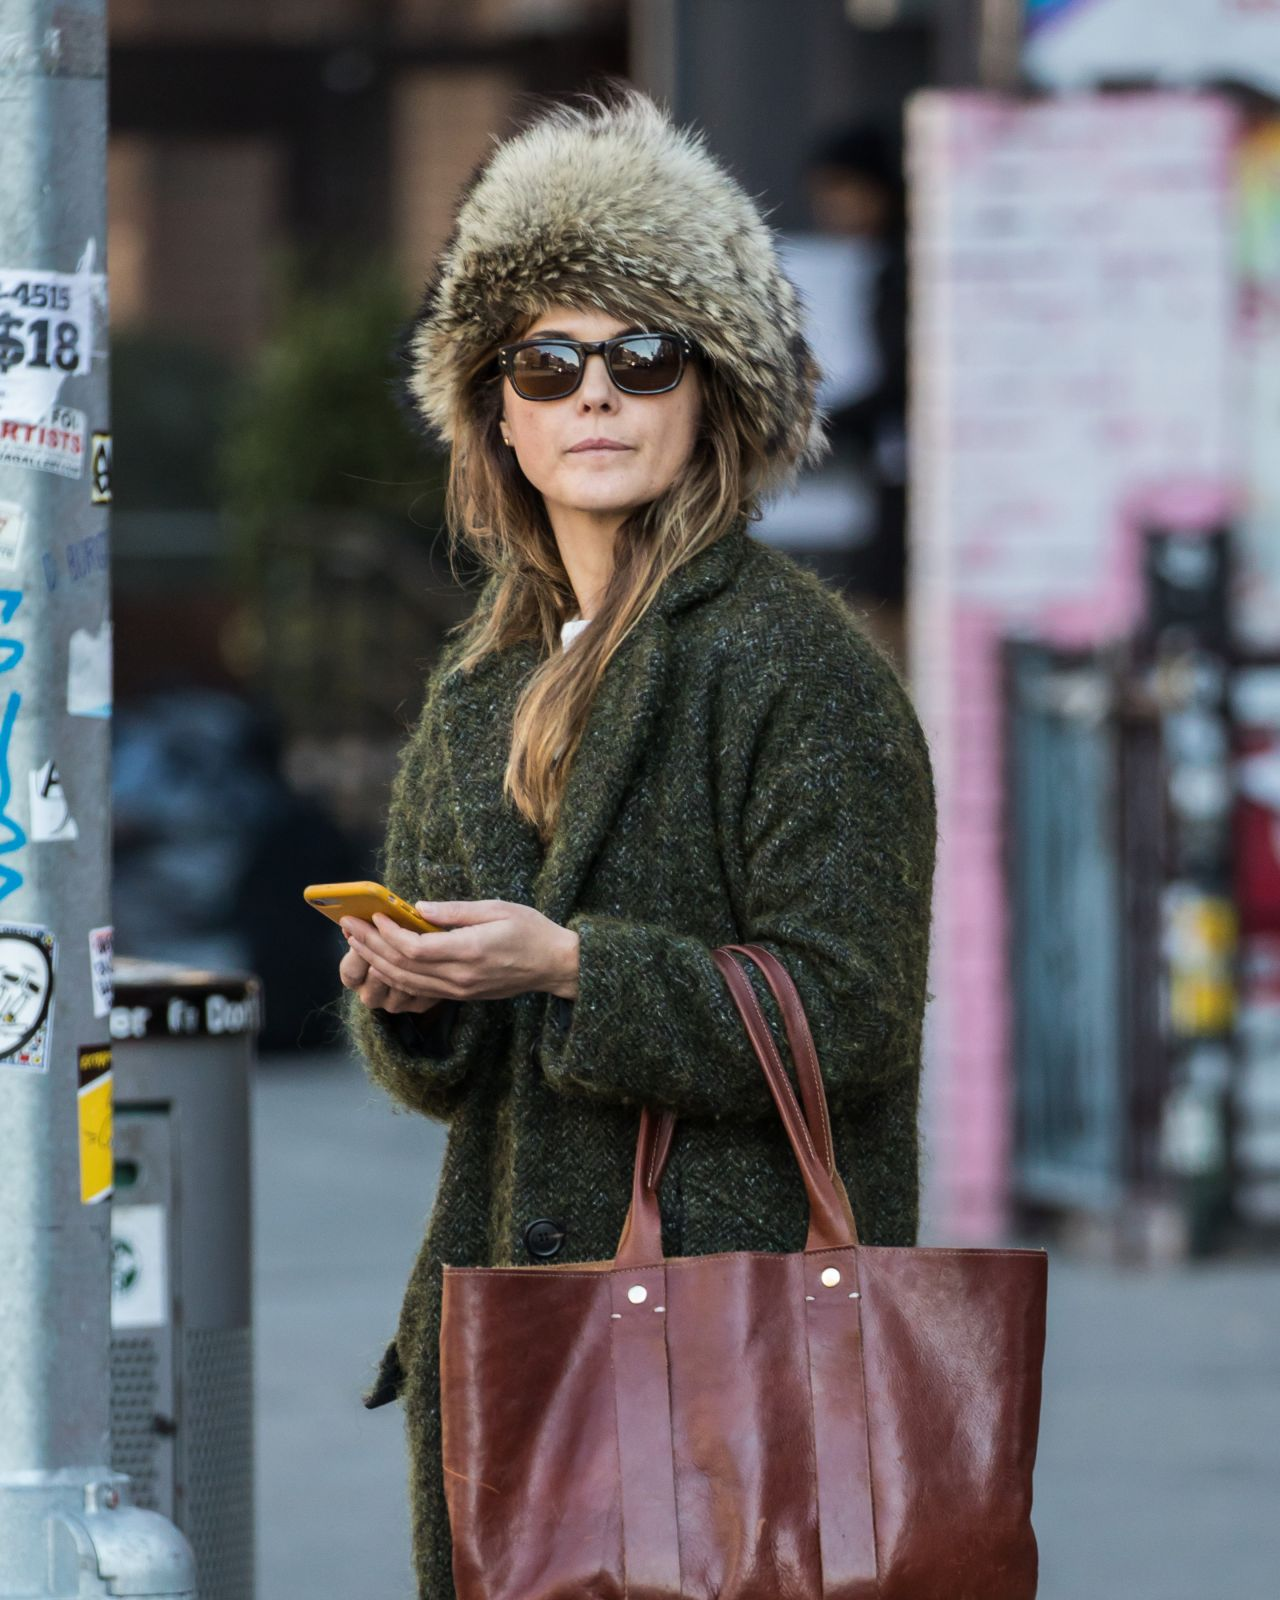 Keri russell winter in nyc naked (99 photos), Boobs Celebrity photo